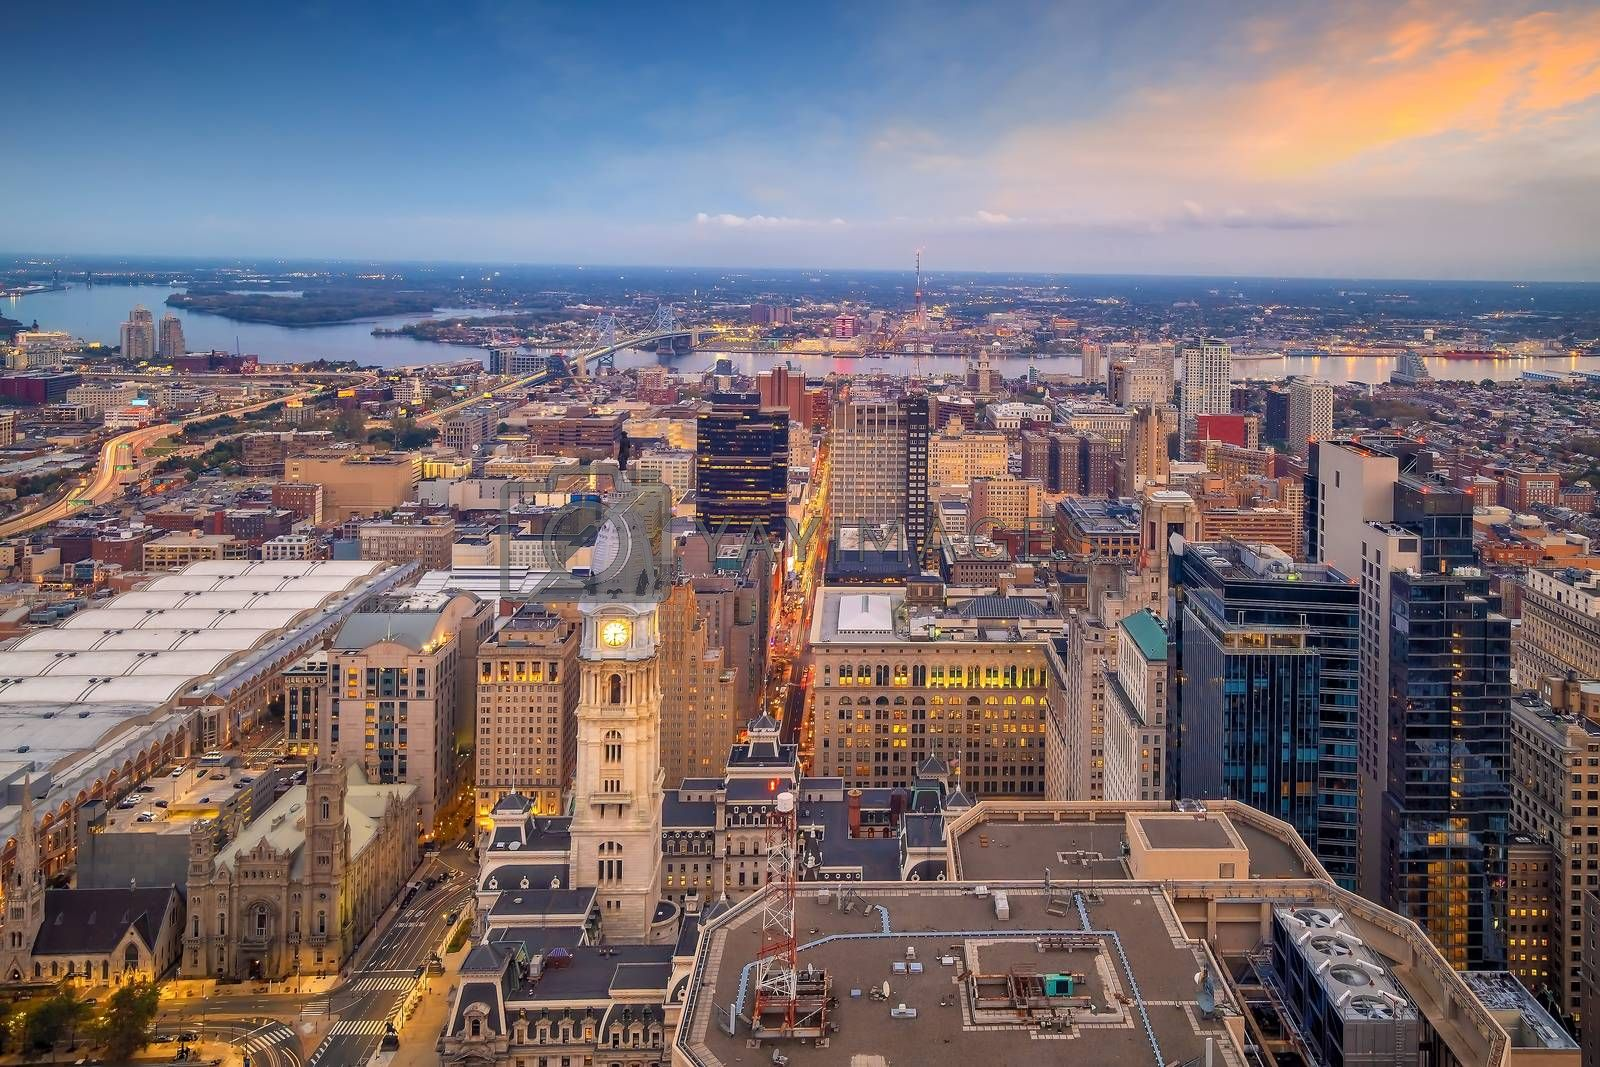 Top view of downtown skyline Philadelphia in Pennsylvania, USA at sunset